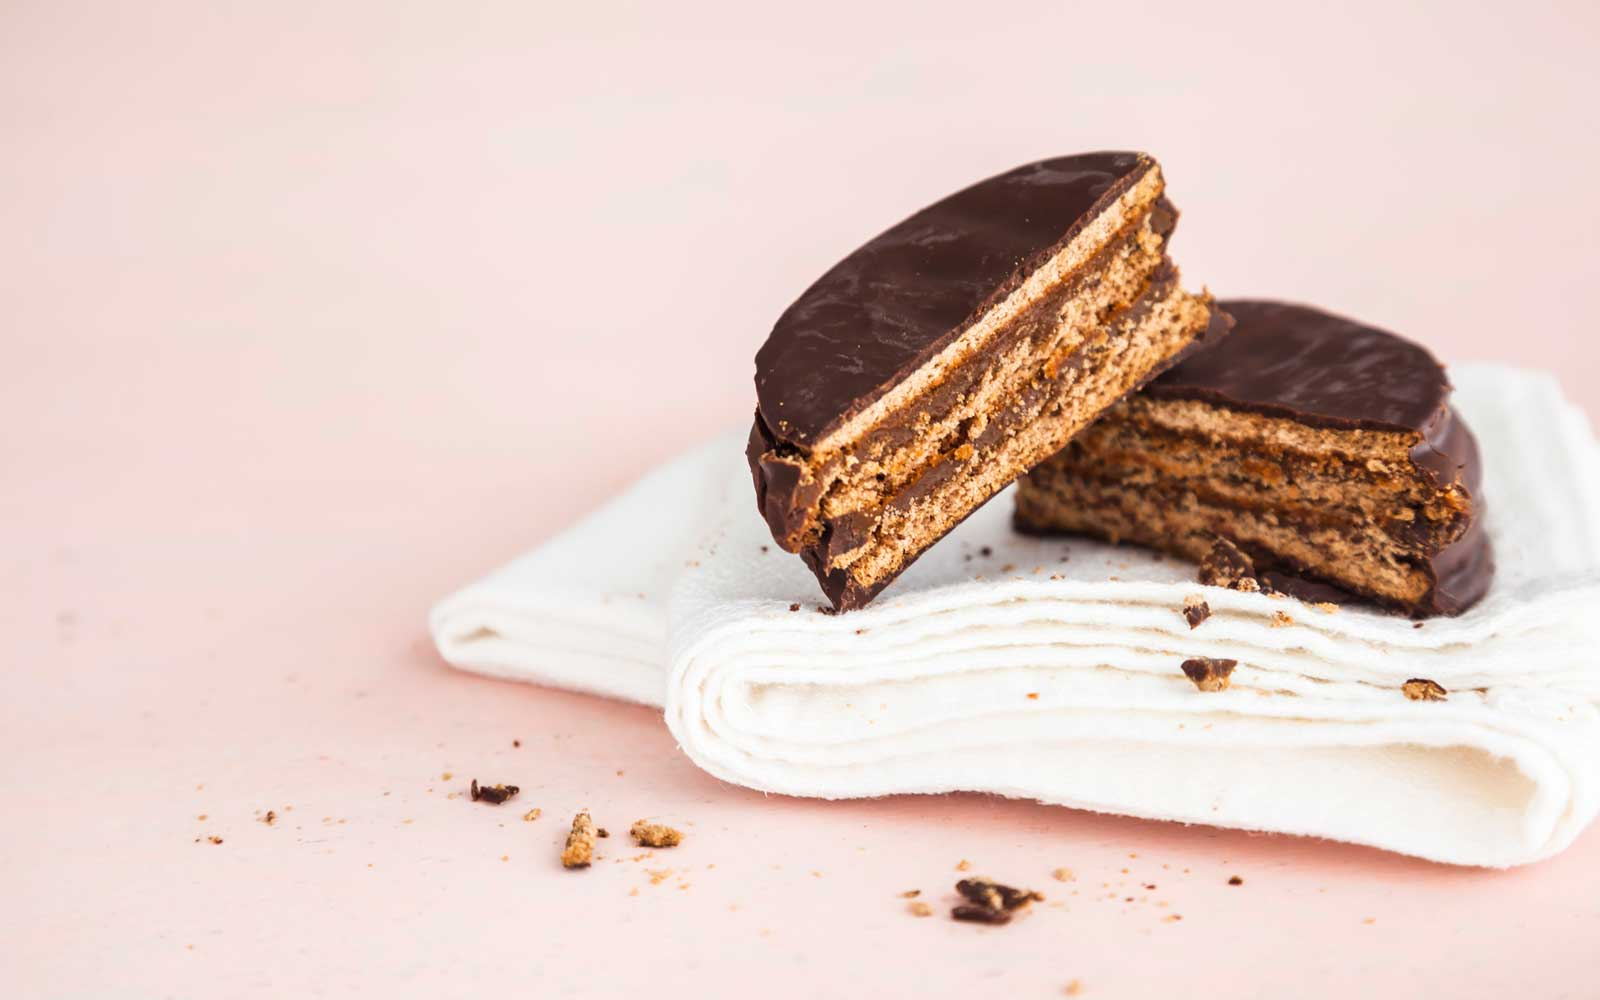 Alfajor, a traditional Argentine pastry made with chocolate and 'dulce de leche', over napkin against pink background